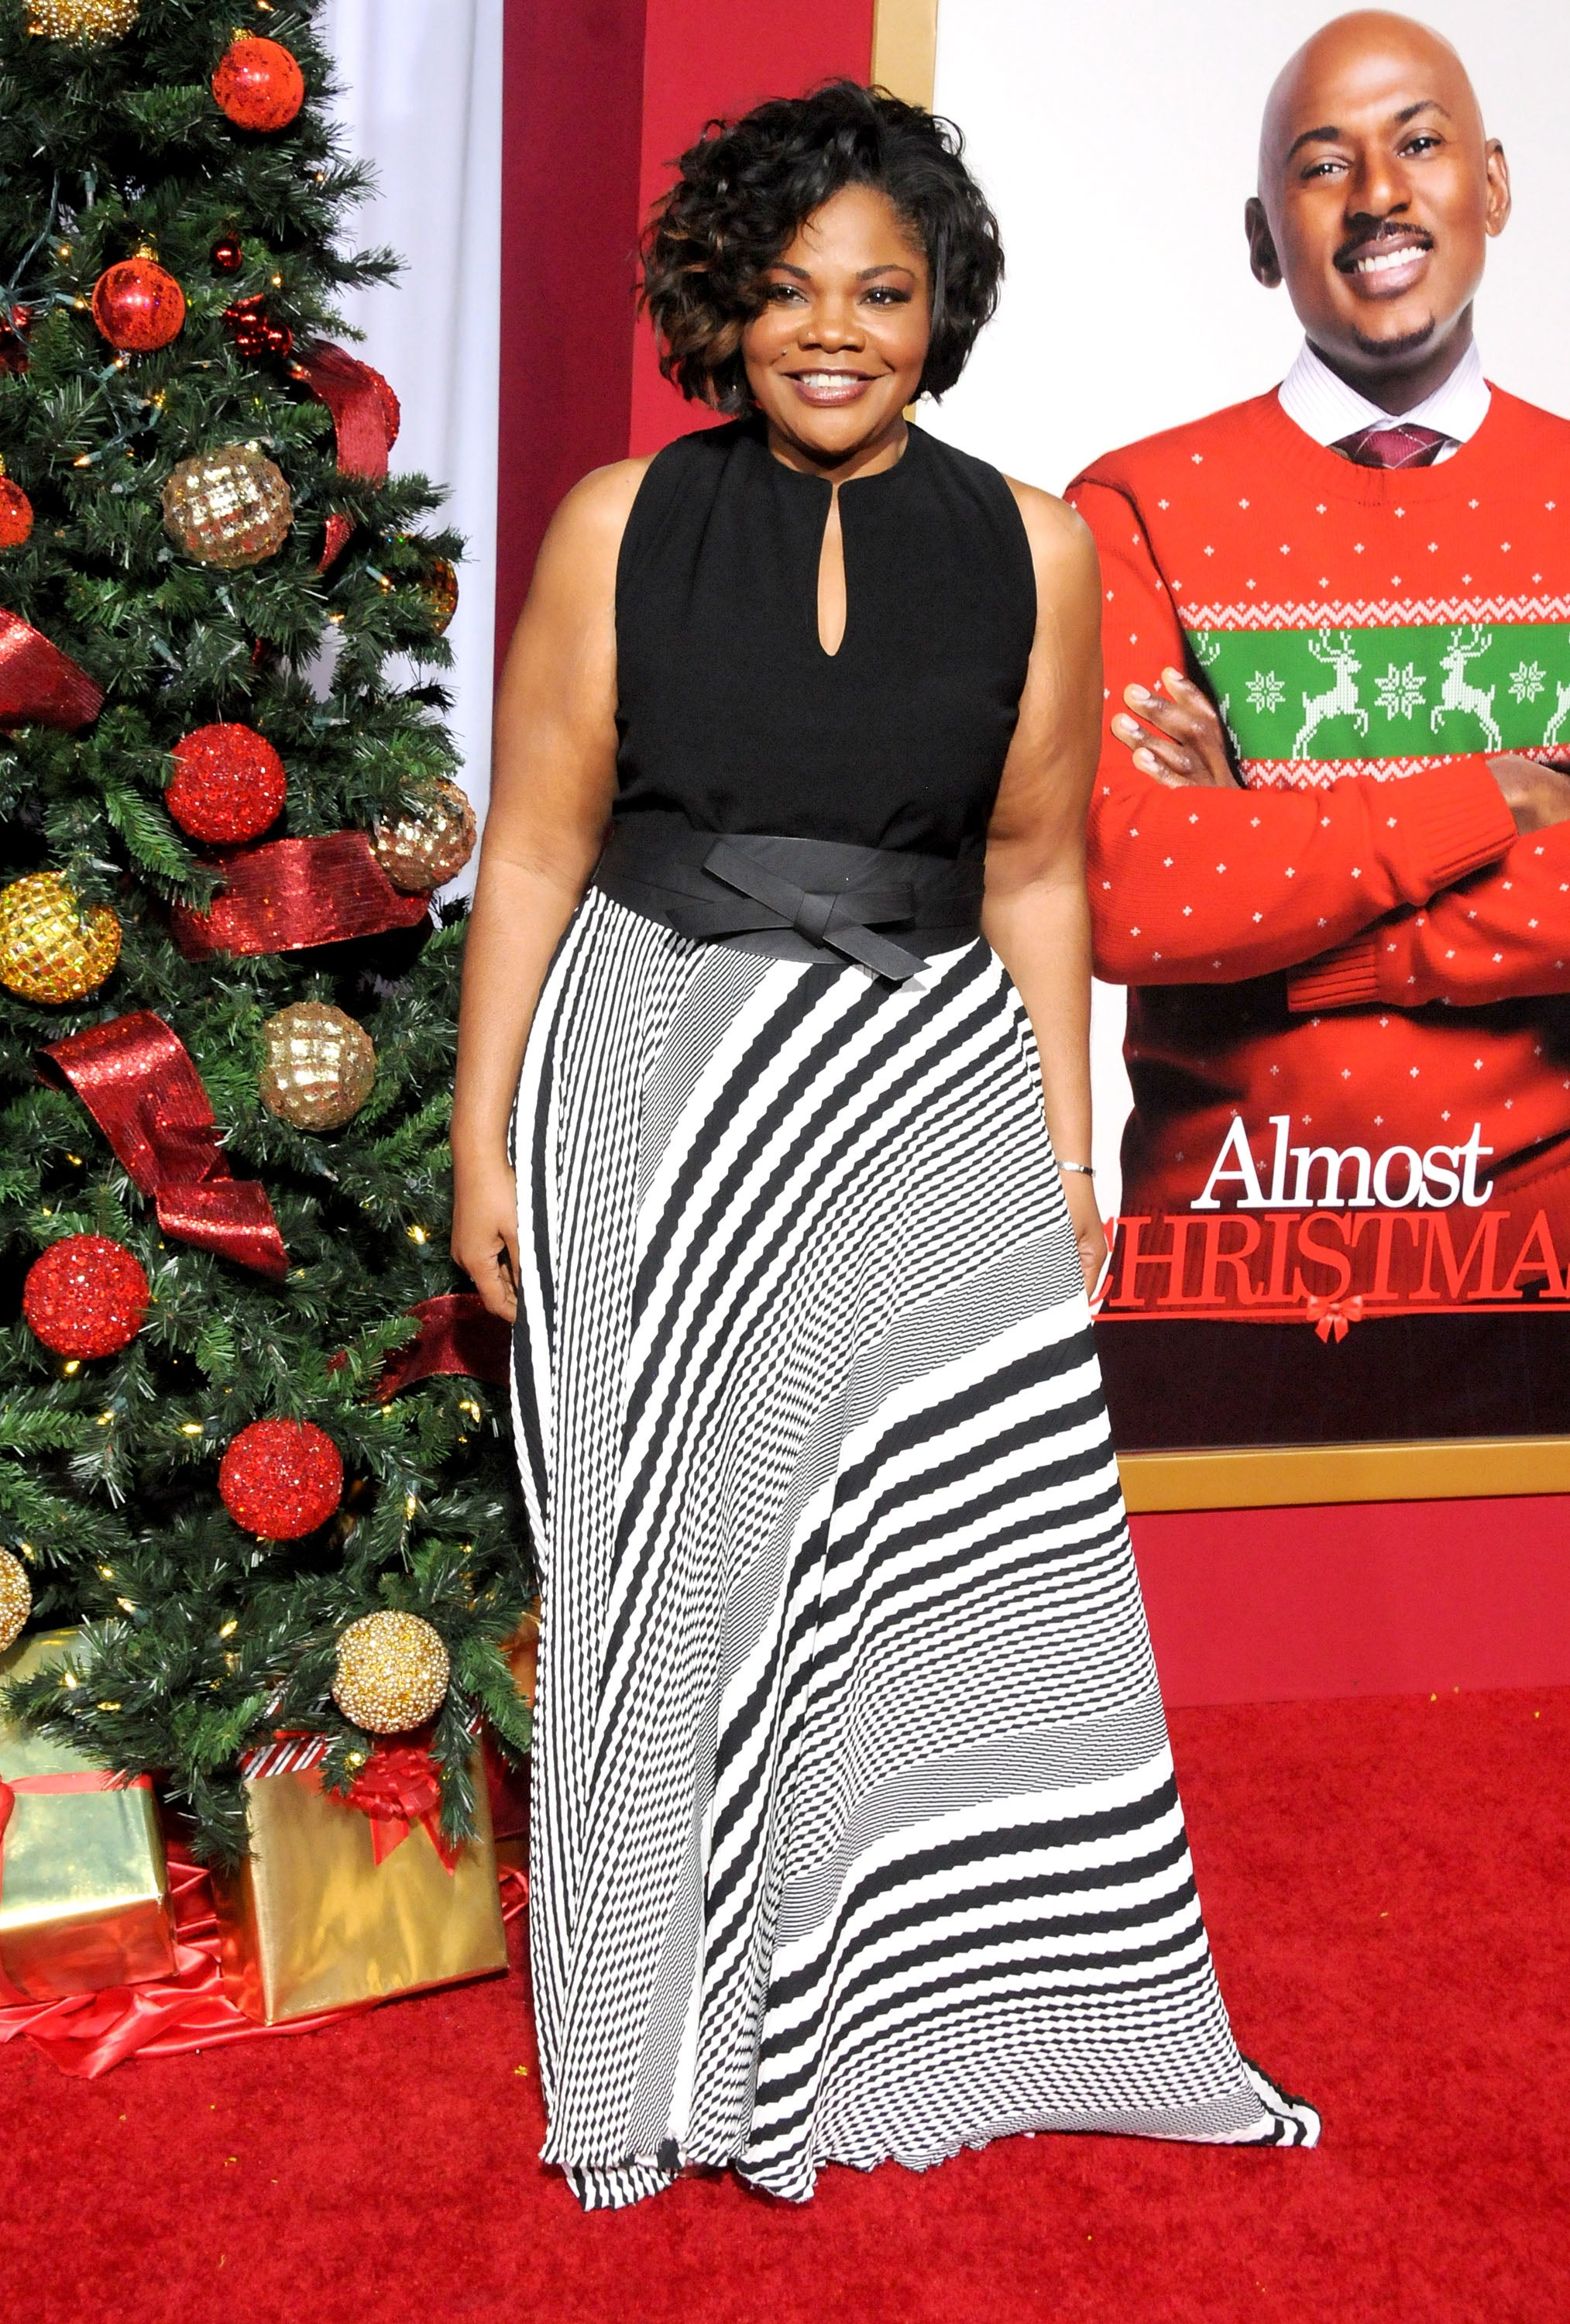 Celebs at the \'Almost Christmas\' Premiere - Essence